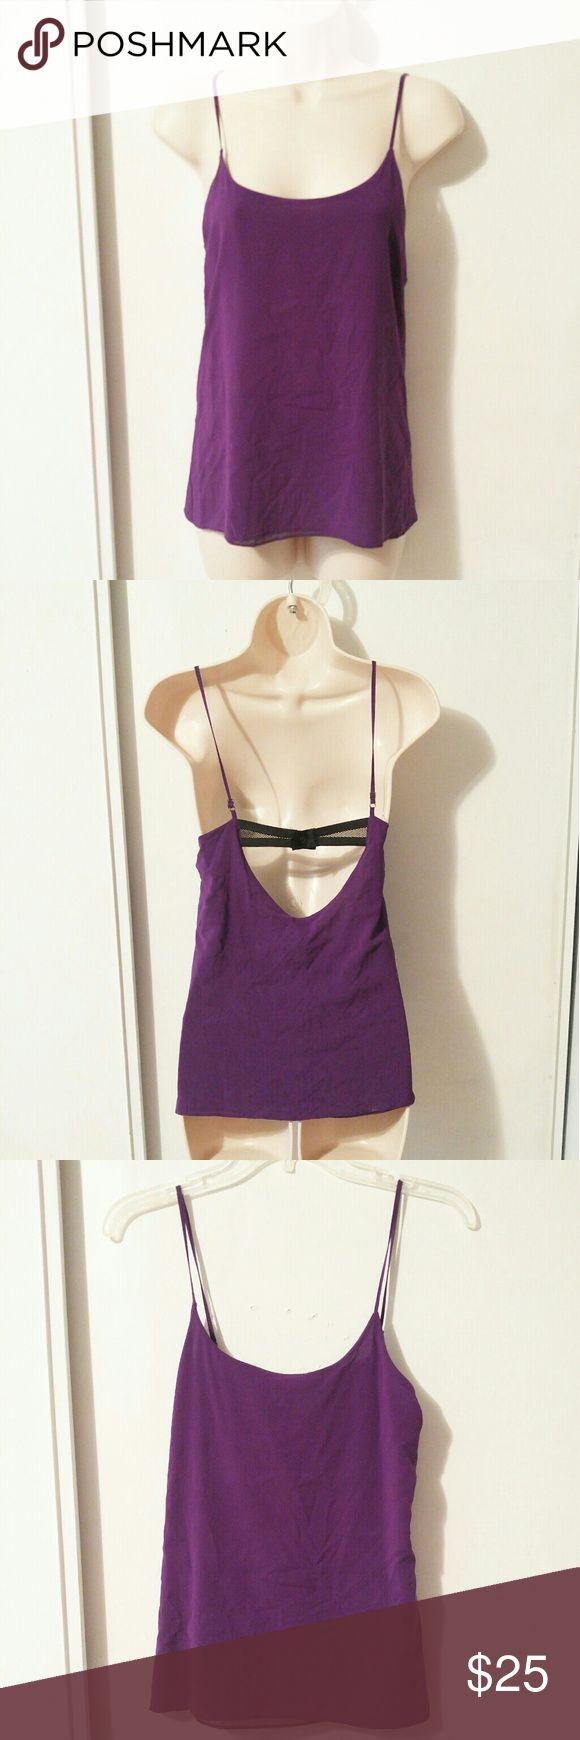 Alice + Olivia purple cami tank top BRAND: Alice + Olivia  SIZE: xs  FLAW: minor discoloration   COLOR: purple and black  DESCRIPTION: Alice + Olivia purple camisole top with black snap button strap. There are some minor discoloration marks. It's an amazing cami. Would look great with a black moto jacket and chunky boots.   Use #bishoujo to sort for your size. Please note I do have several pets, but all items will be washed before shipping  #aliceandolivia #aliceandoliviacami…